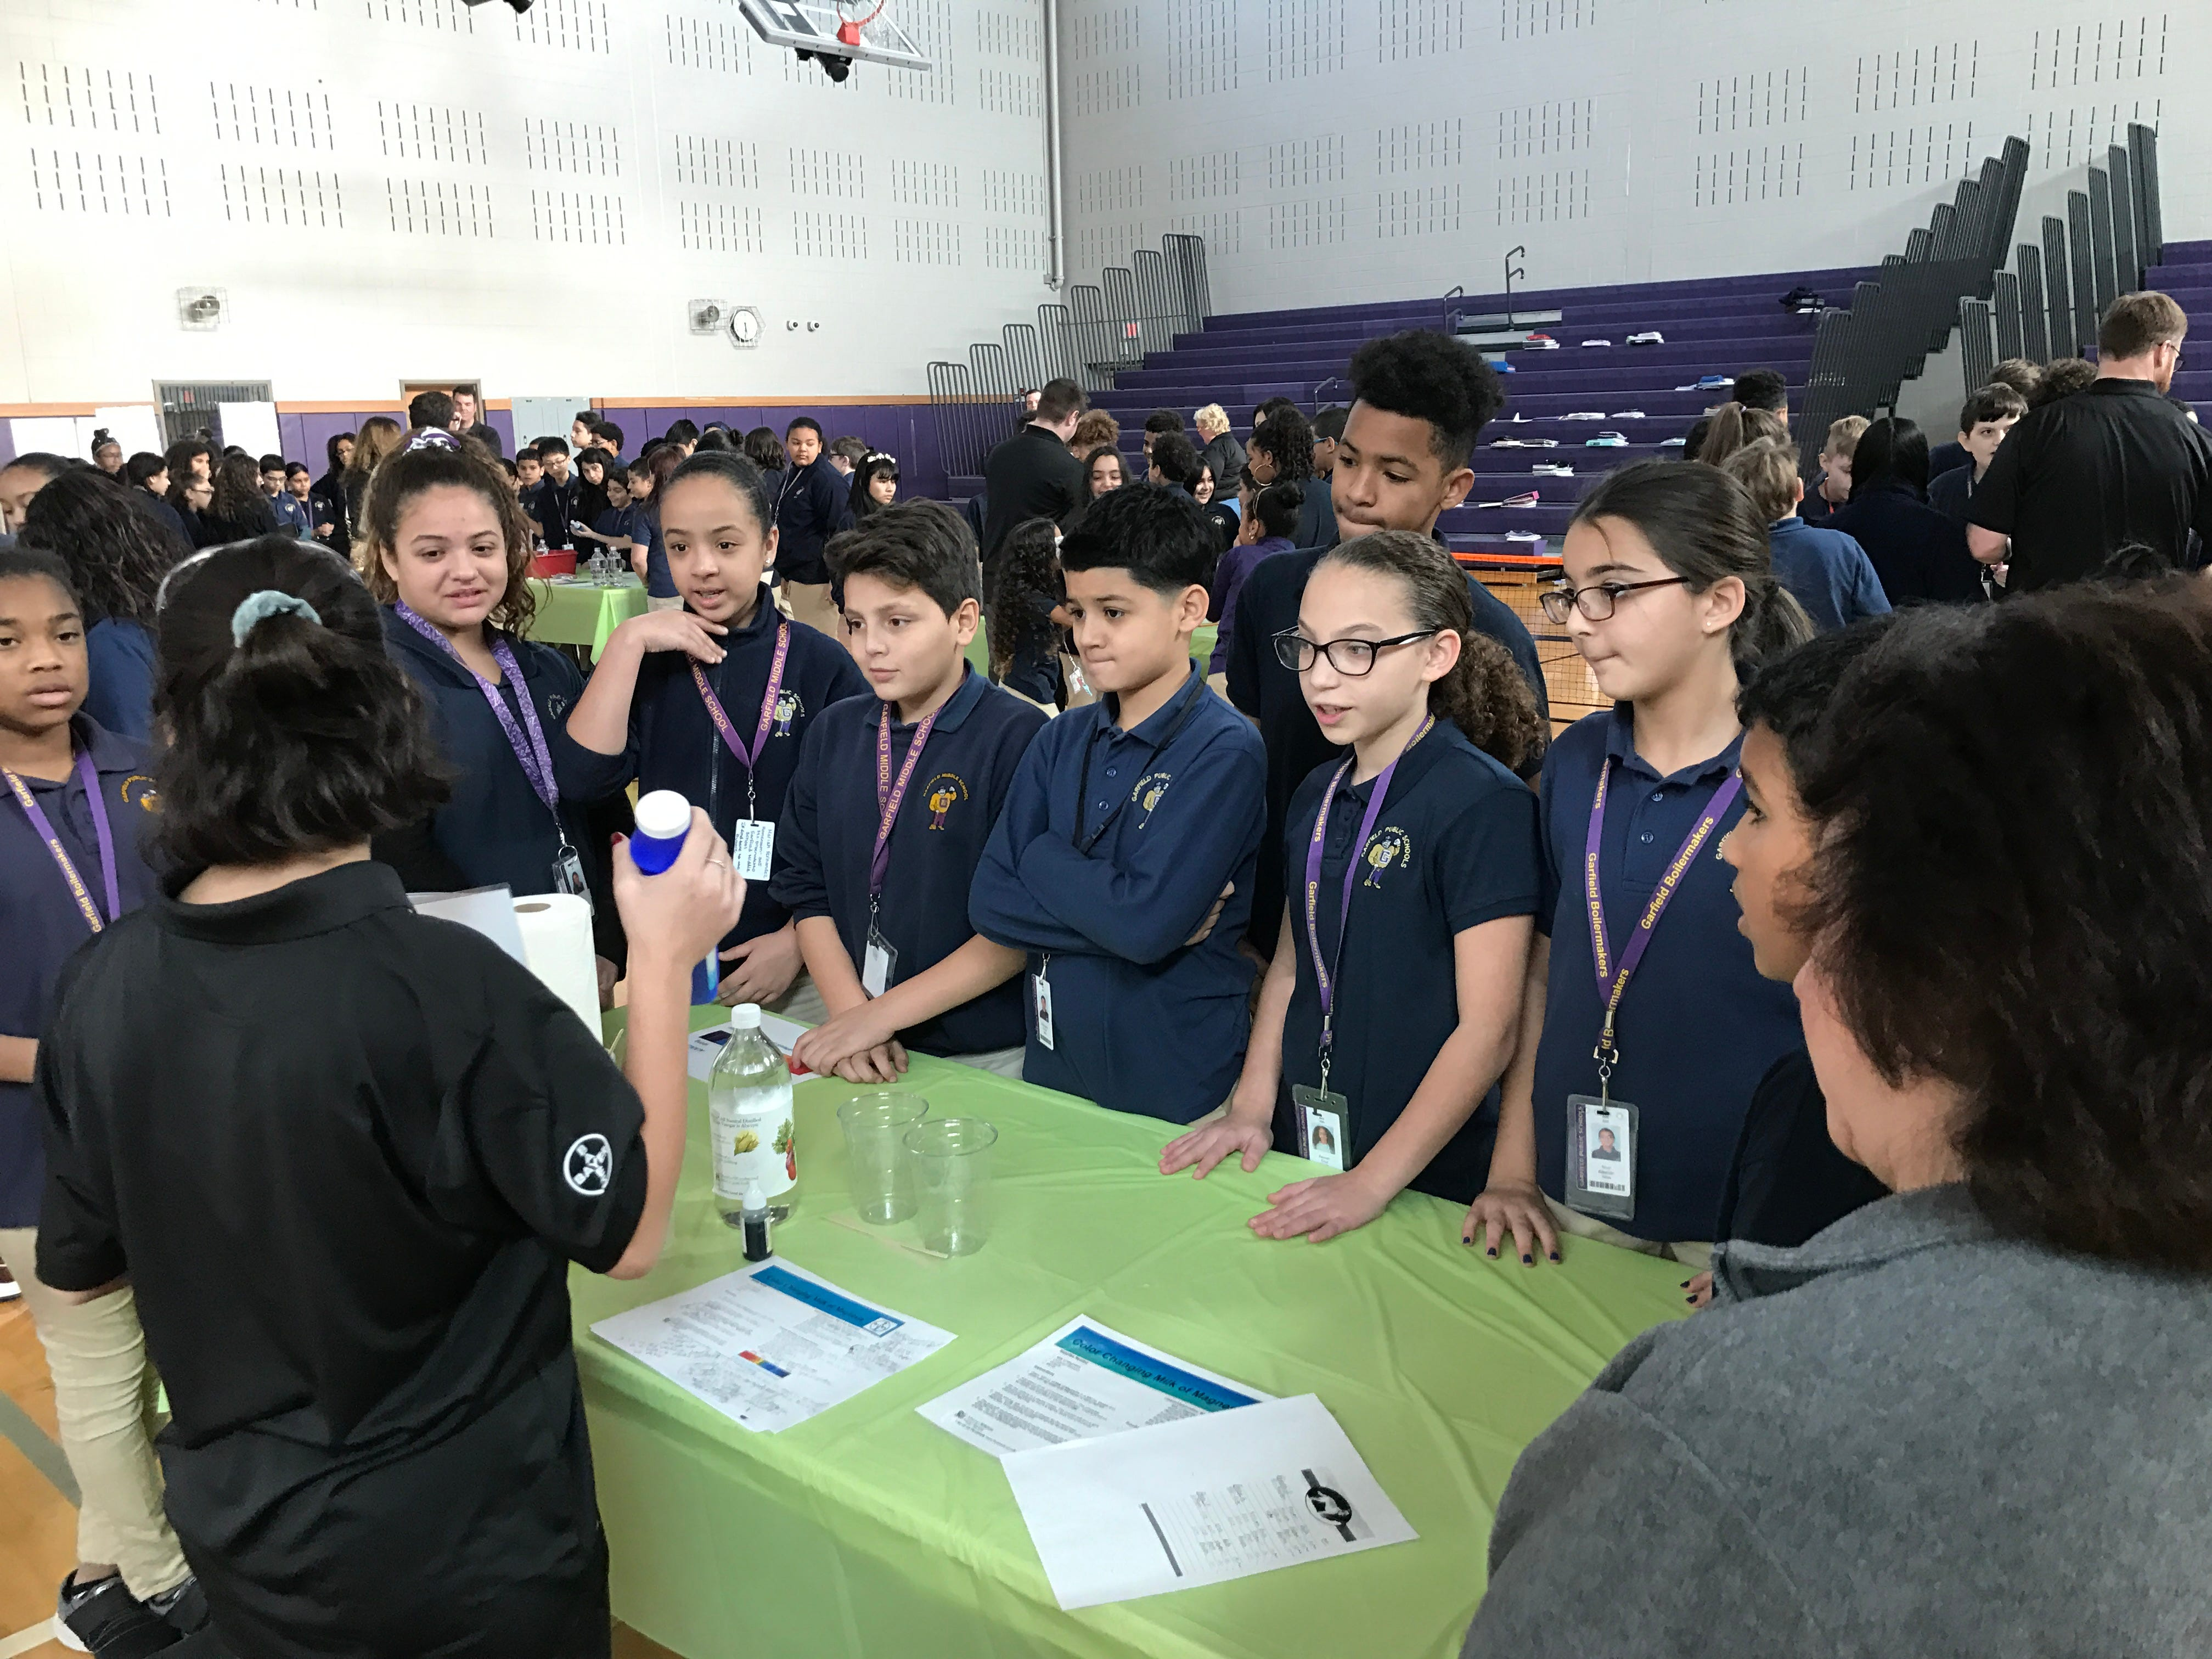 Garfield Middle School students learn about the acidity of household liquids during a visit from Bayer.